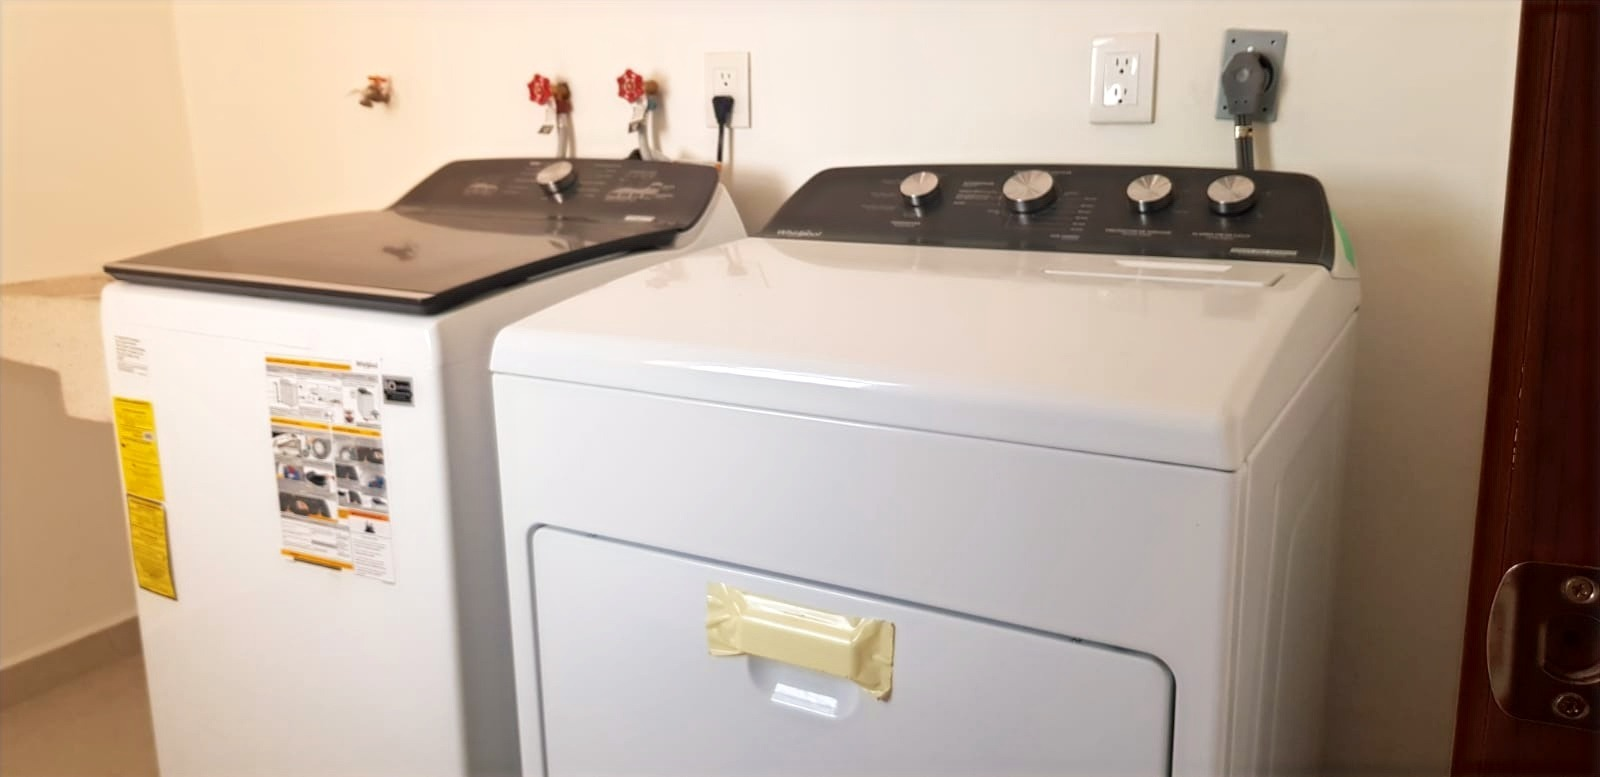 Full-size washer and dryer.